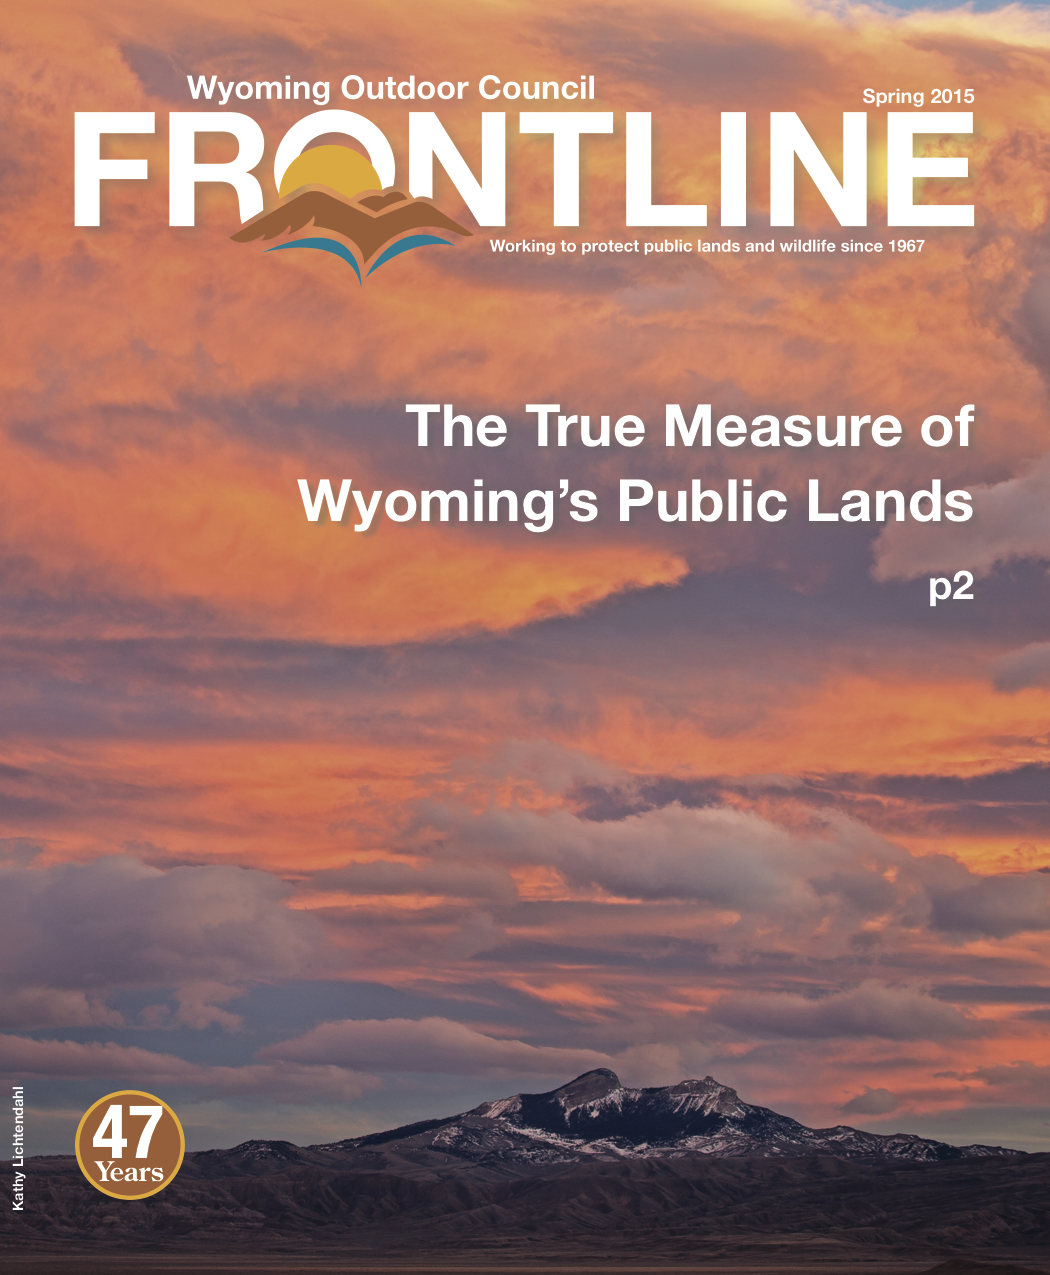 The True Measure of Wyoming's Public Lands